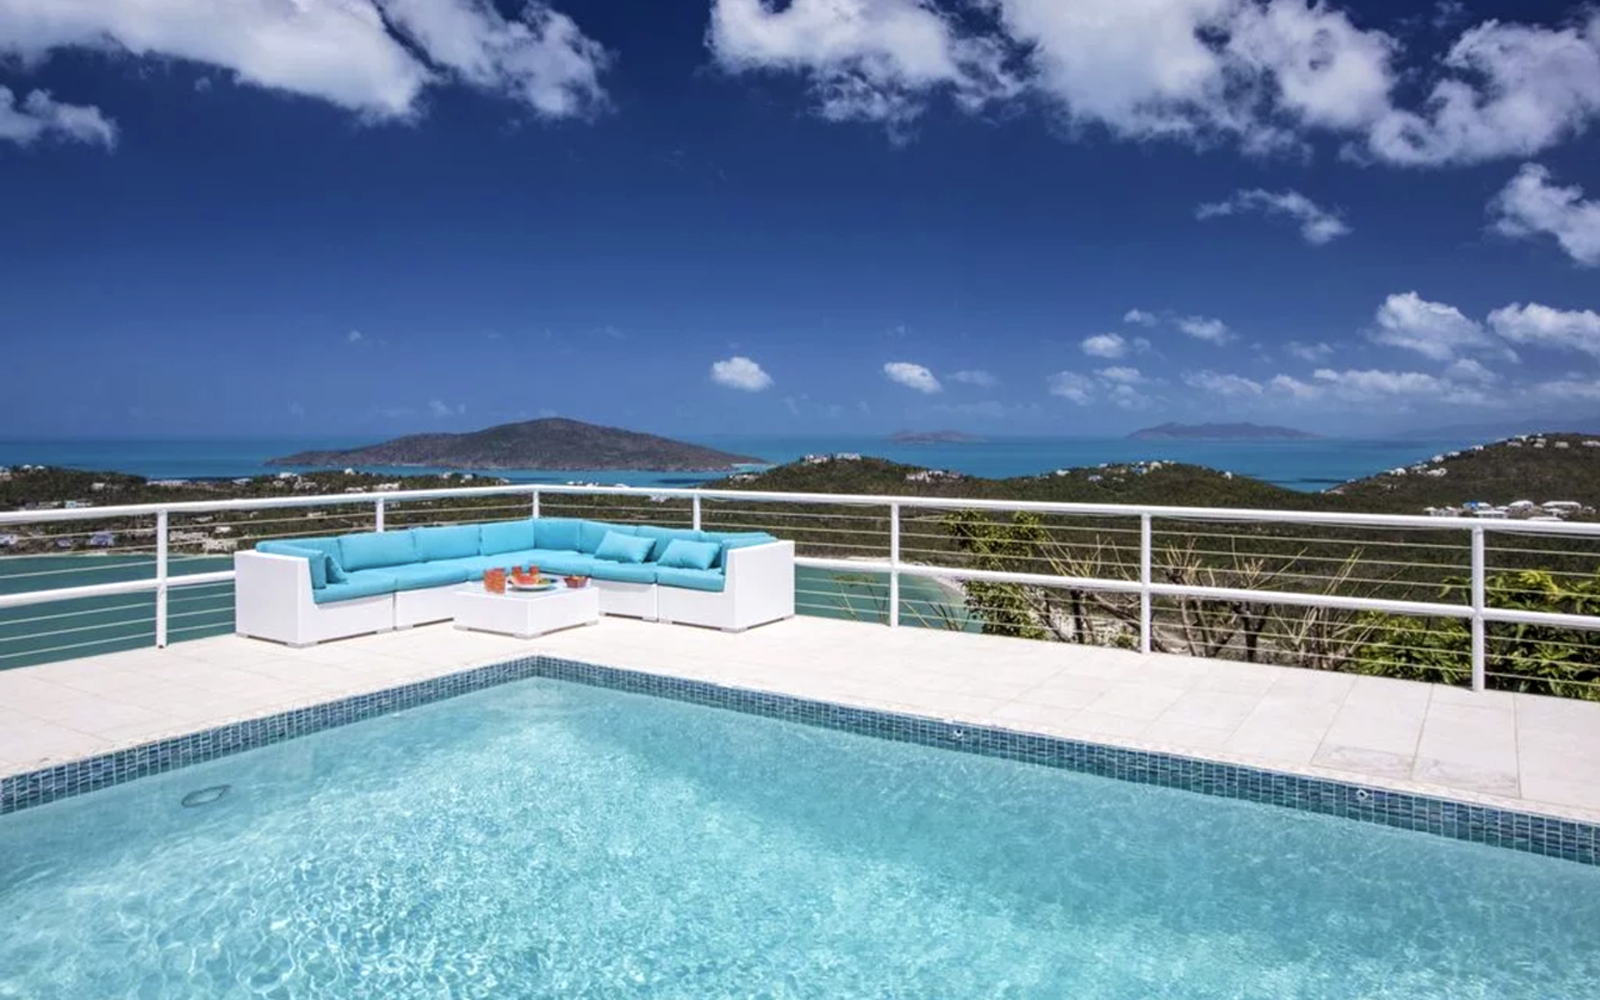 Luxury villa rental in St Thomas, available from ThirdHome